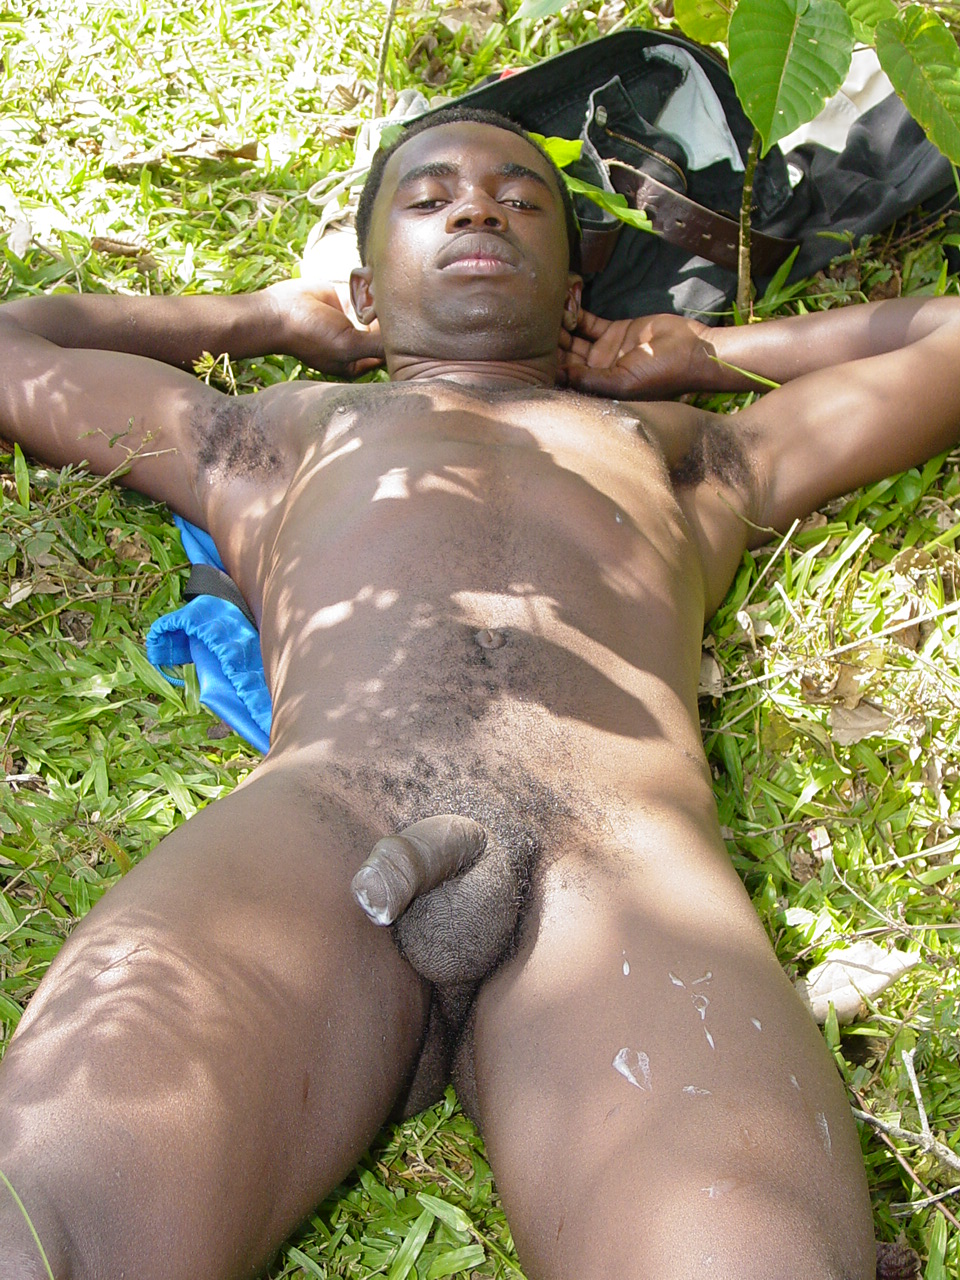 Dicks naked man Africa